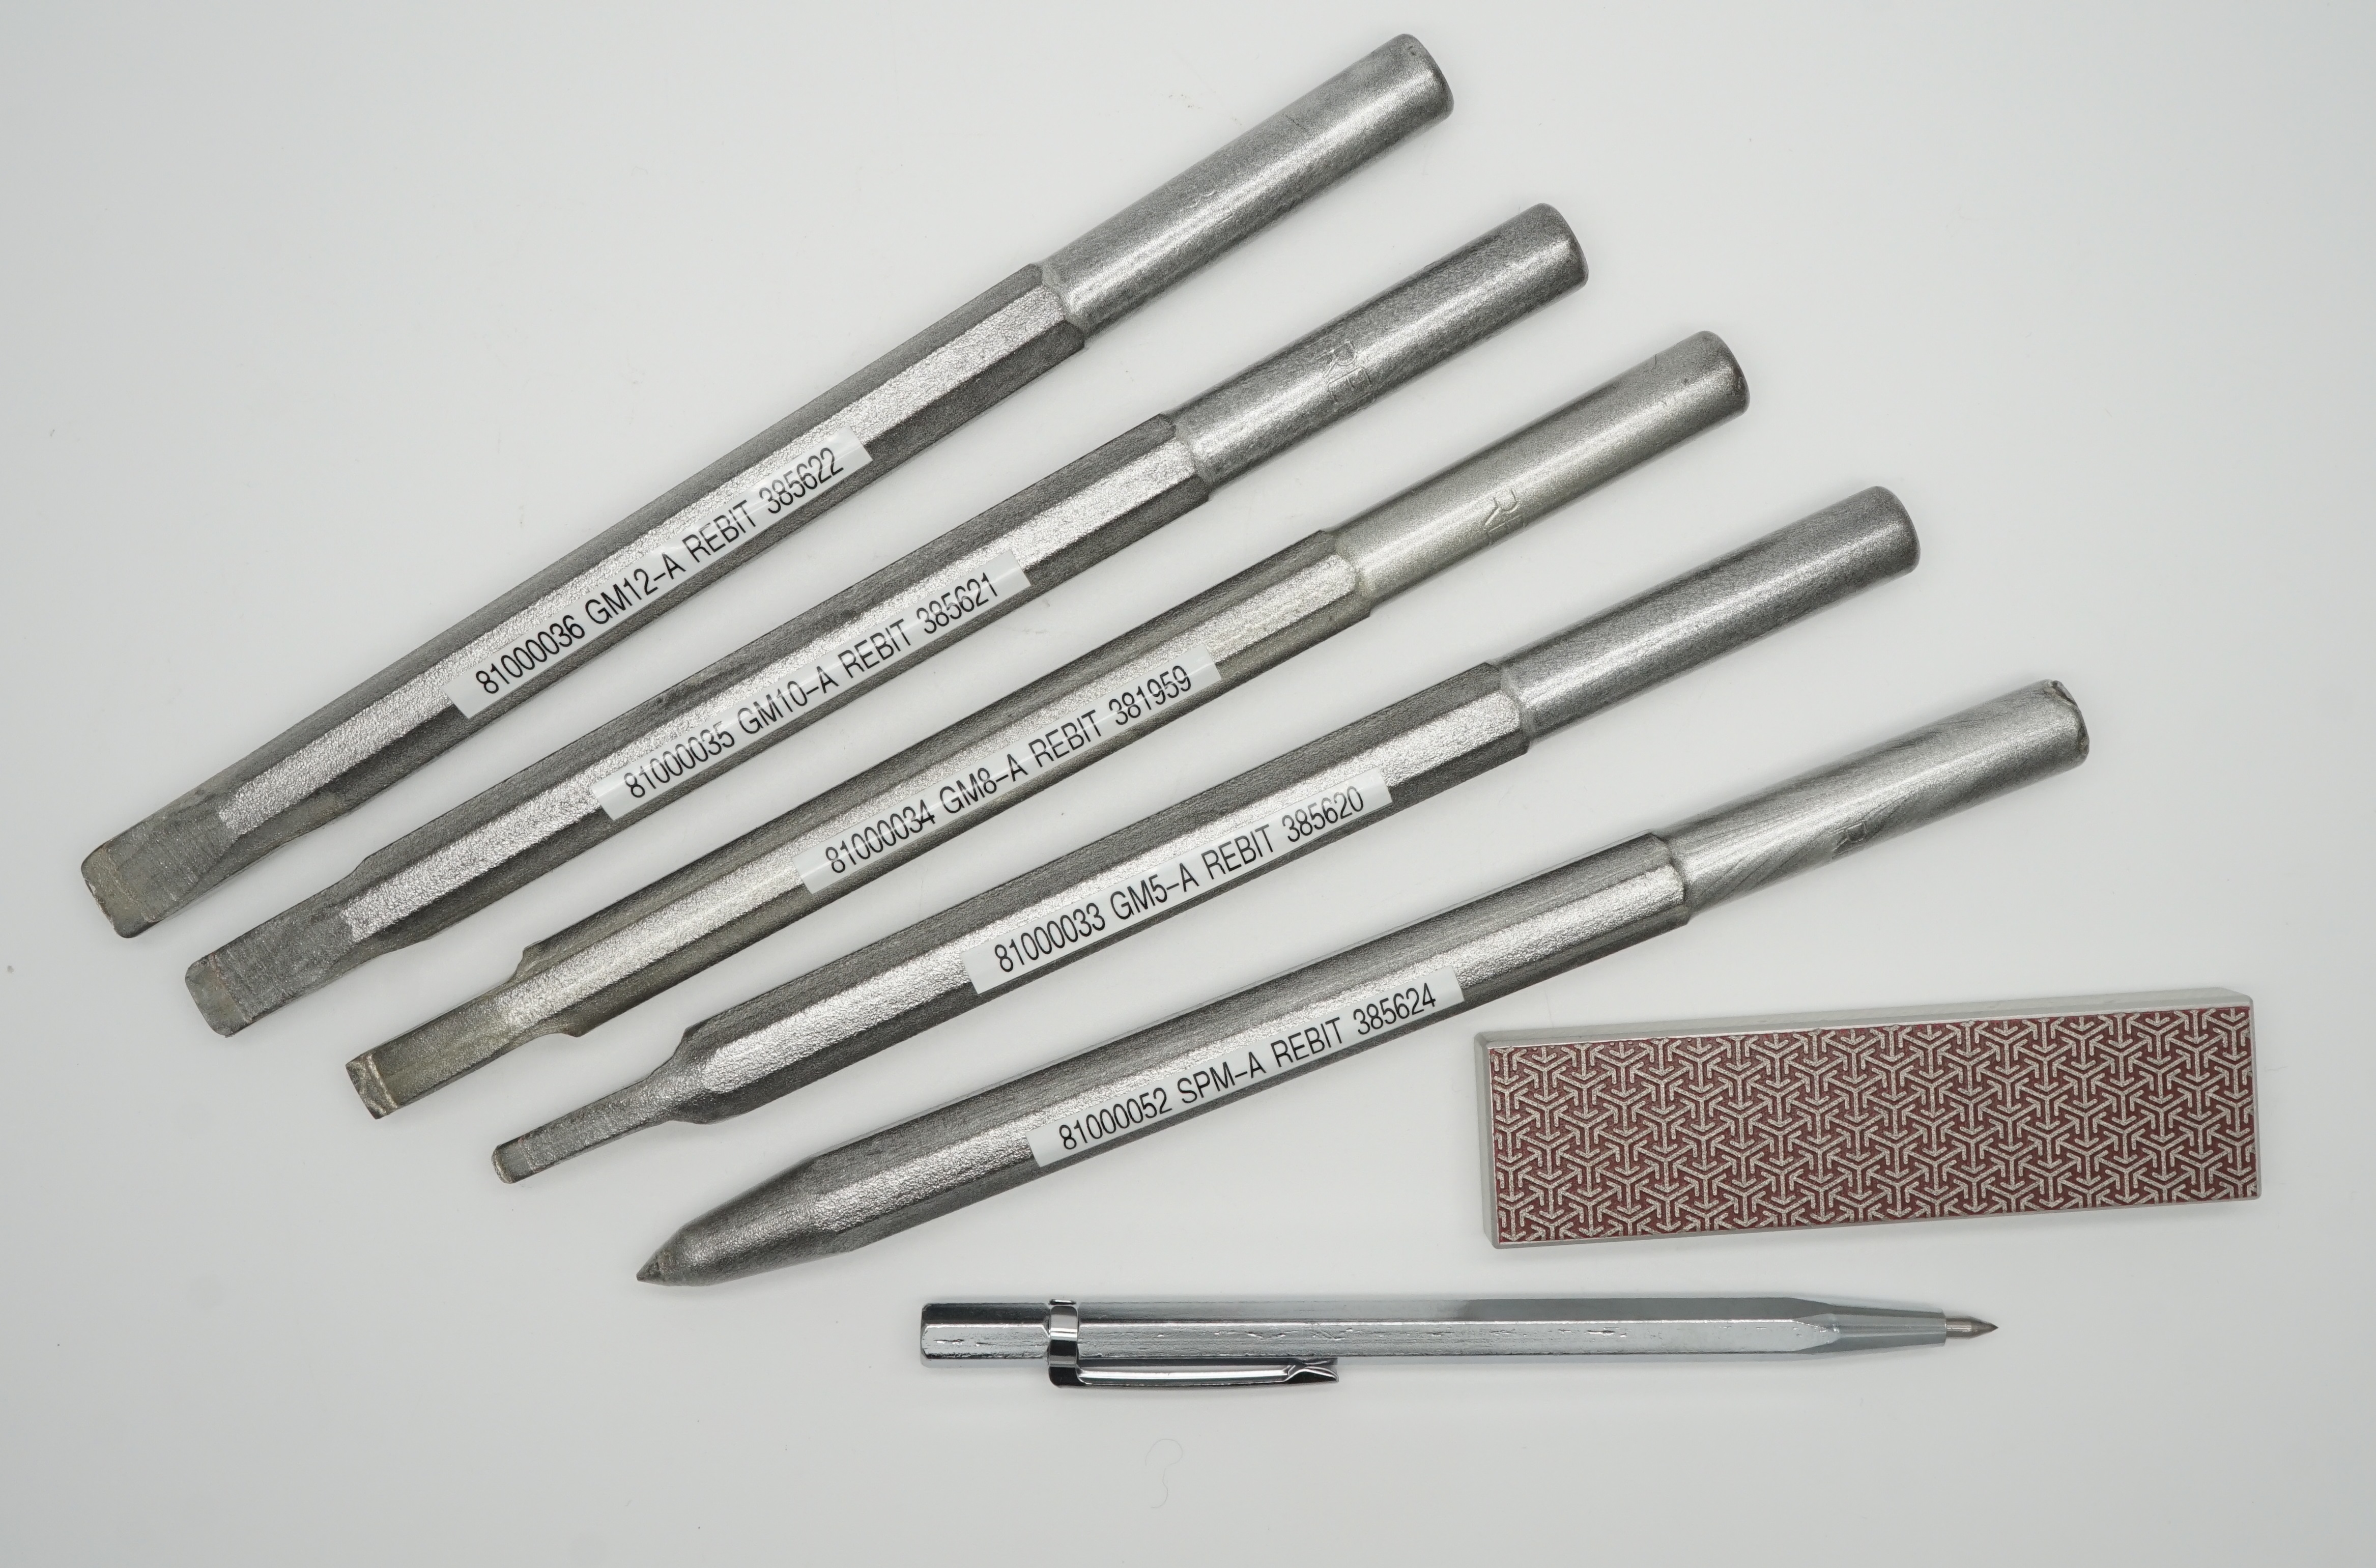 Rebit Professional Swedish made TCT Punch chisel for all stone